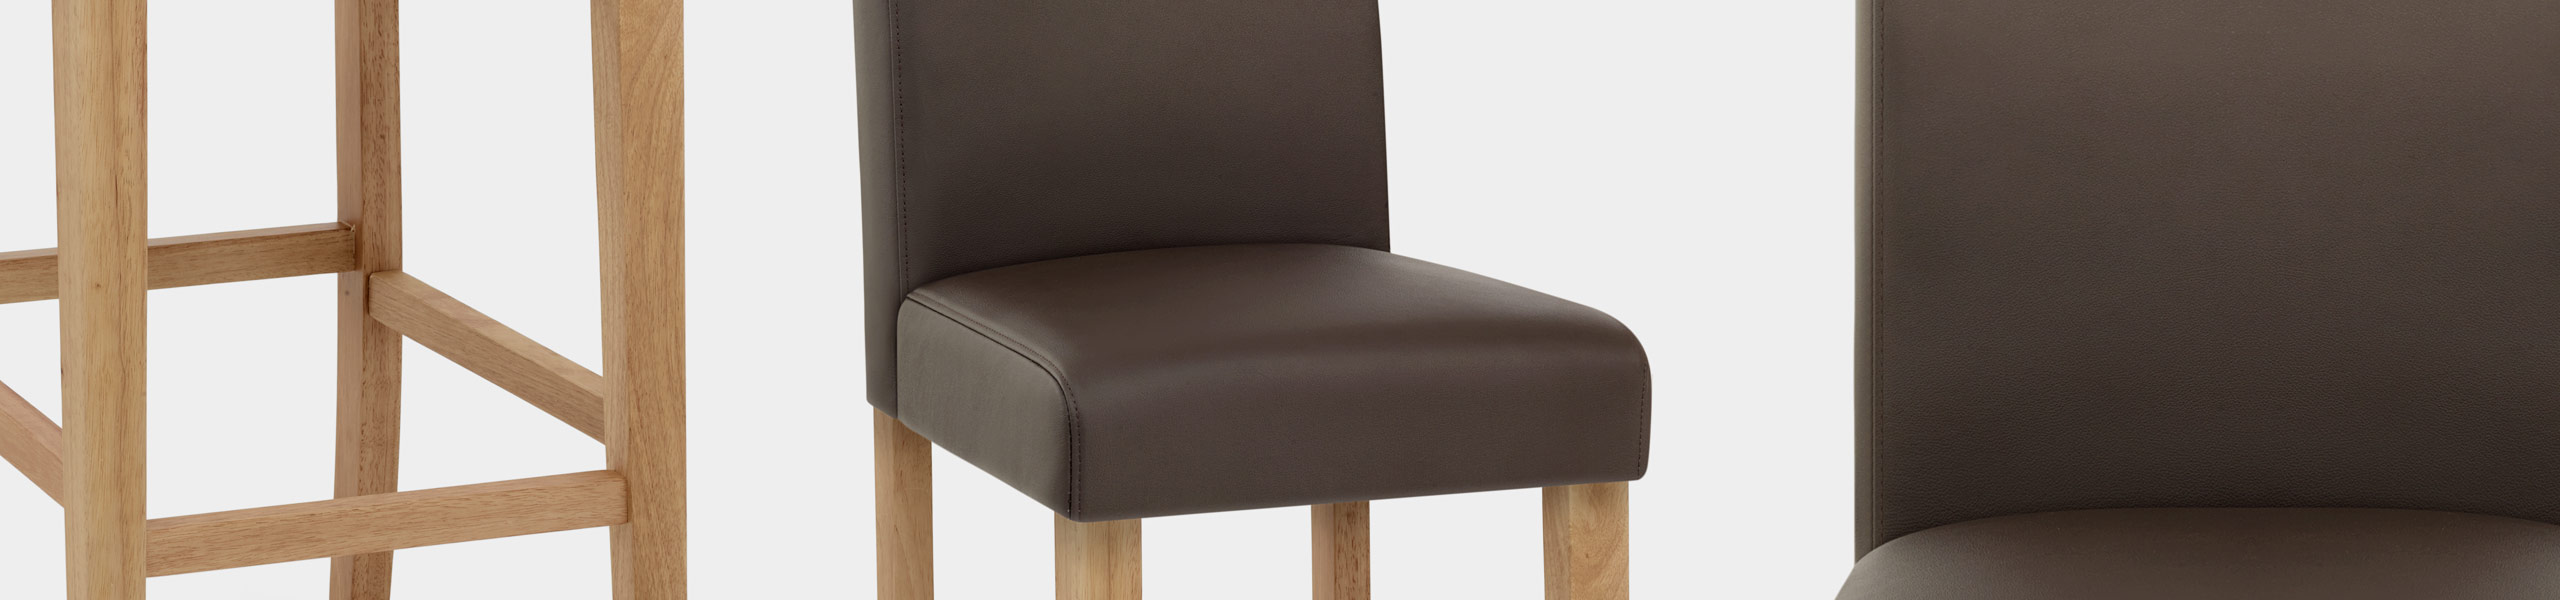 Tetbury Oak Bar Stool Brown Leather Video Banner